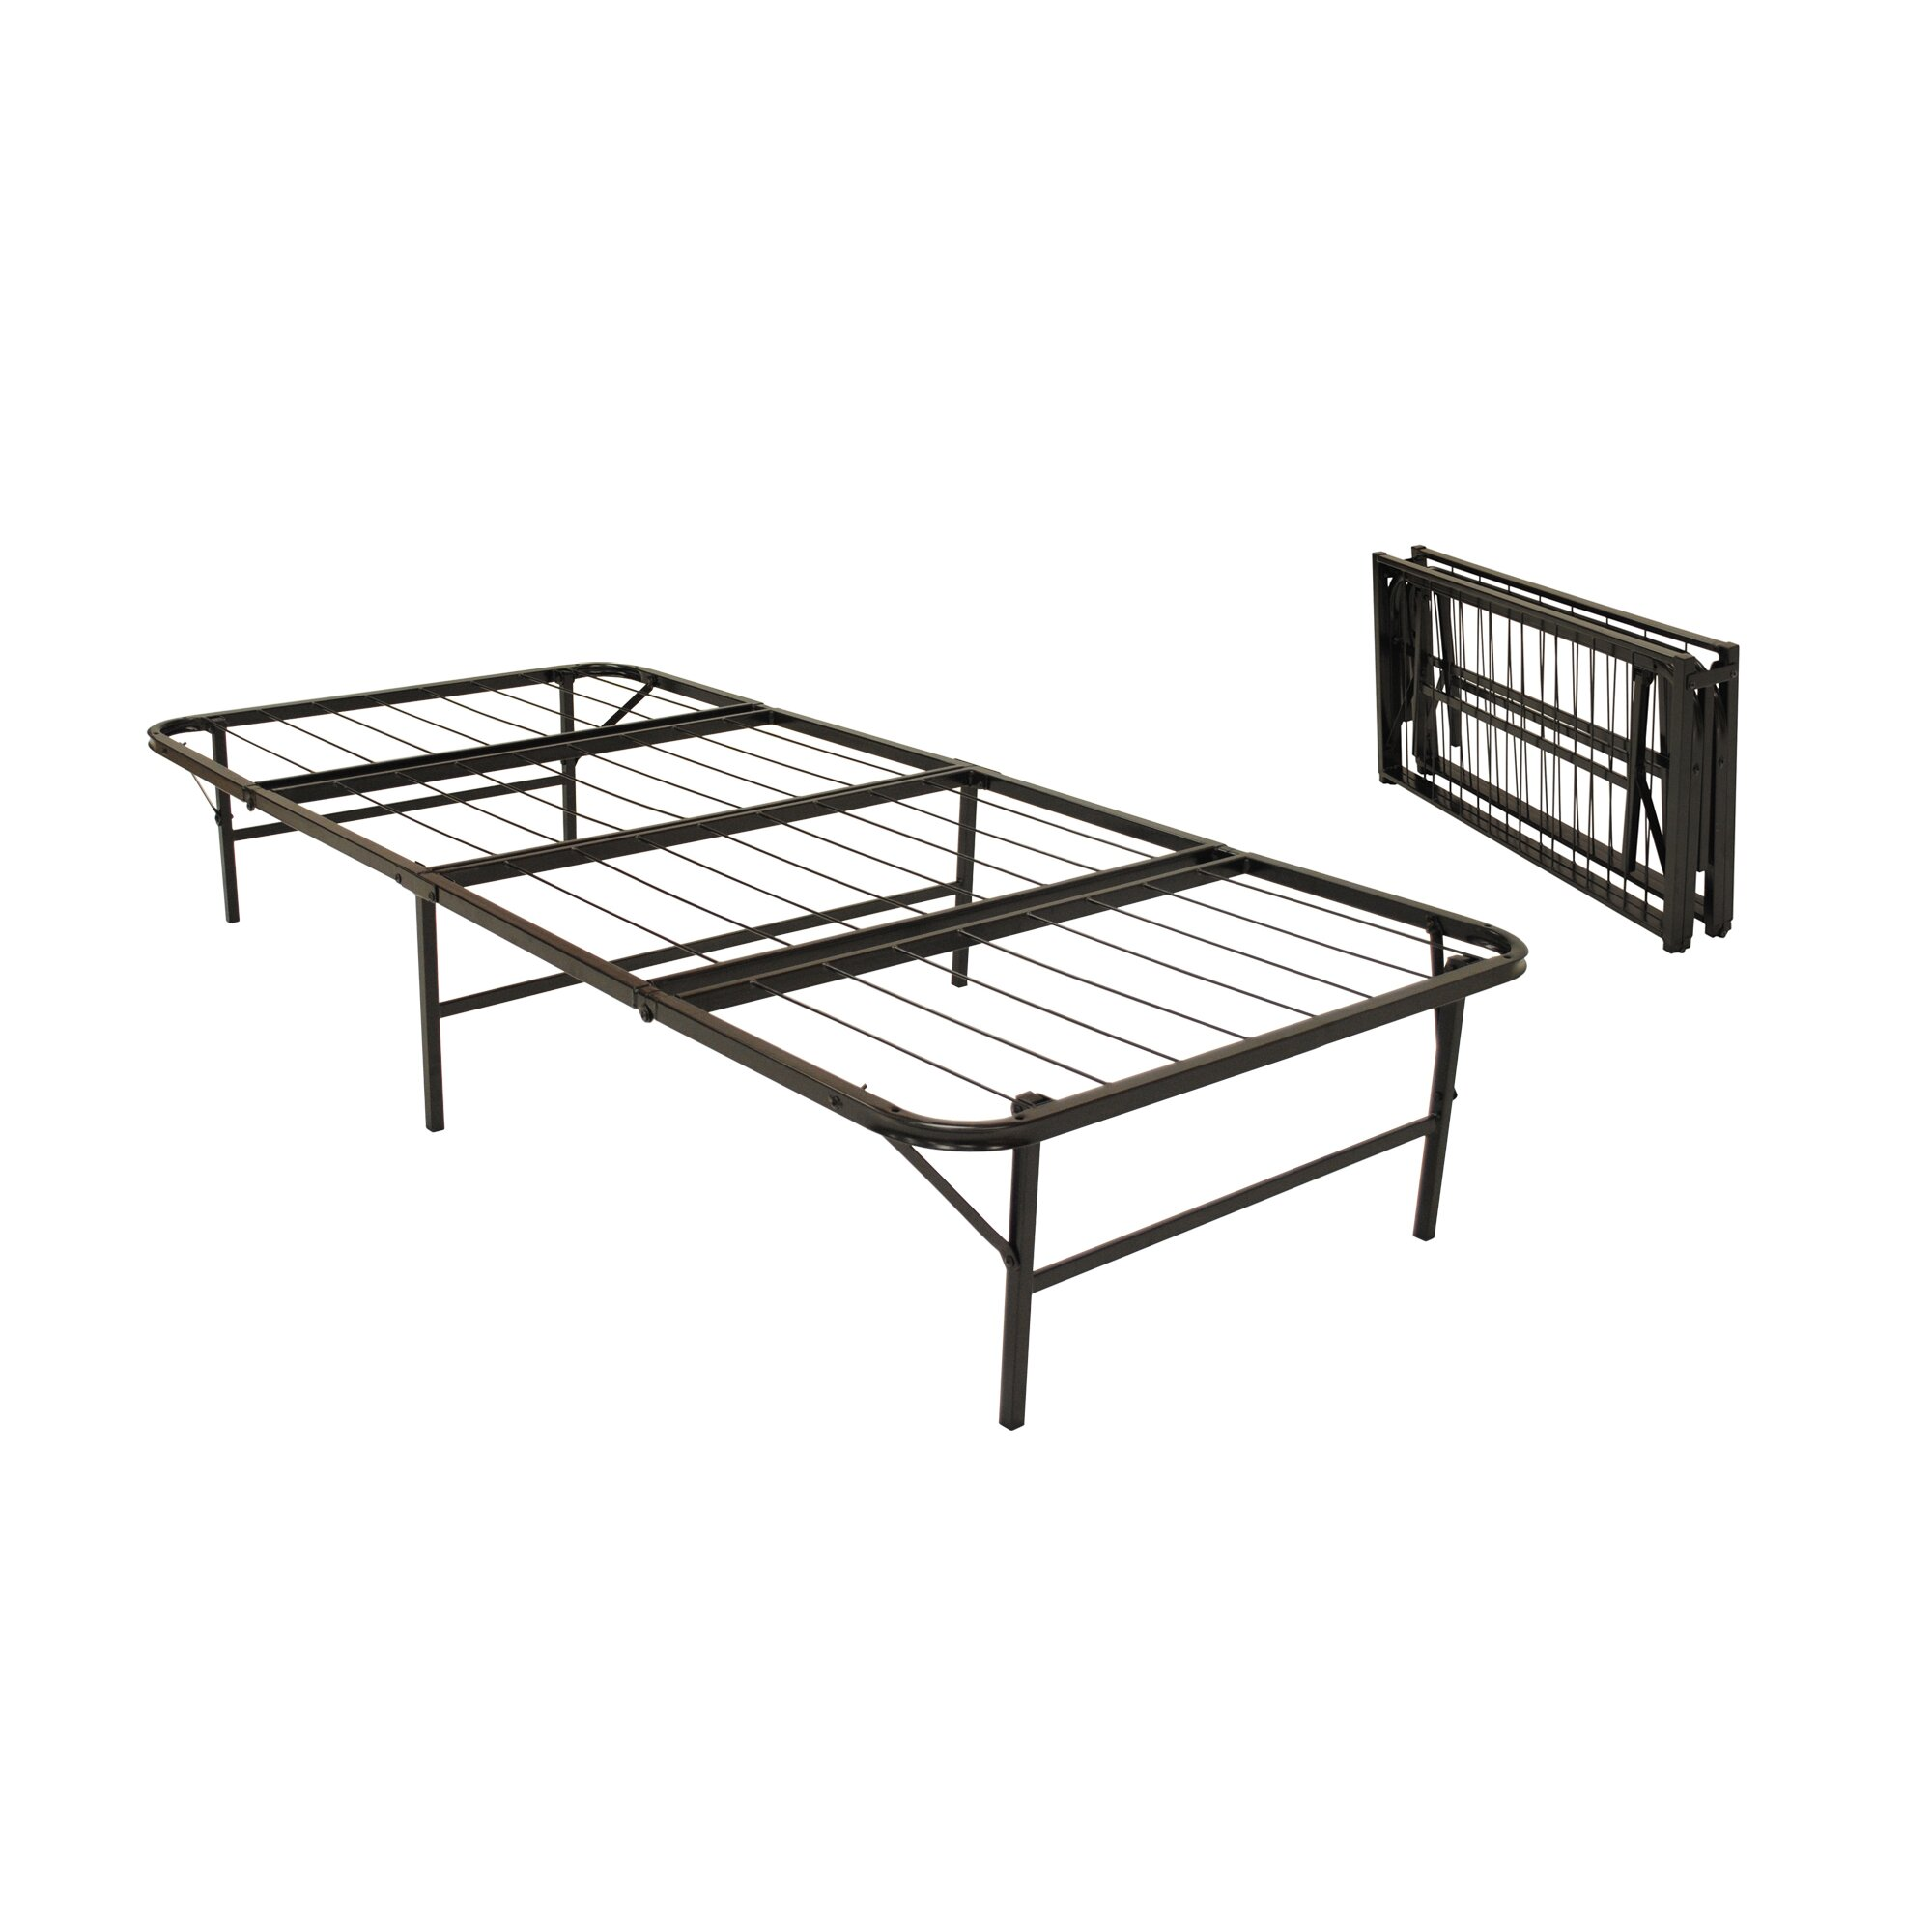 pragma bed quad fold bed frame set